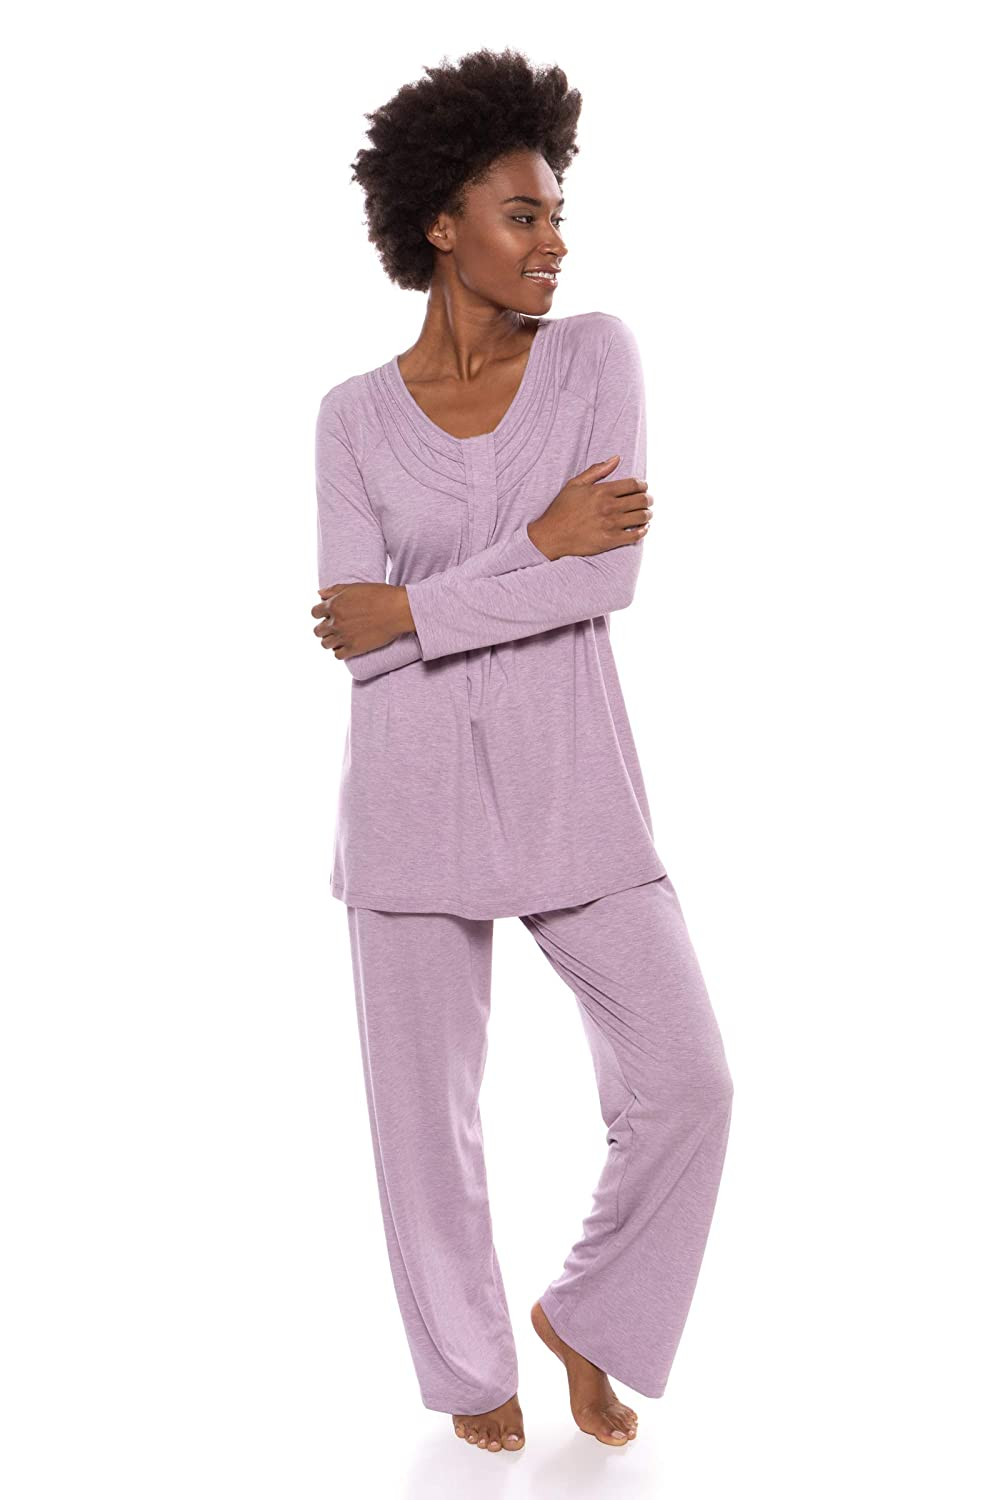 46ed746313 Women s Long Sleeve PJs in Bamboo Viscose (Replenish) Cozy Pajama Set by  Texere at Amazon Women s Clothing store